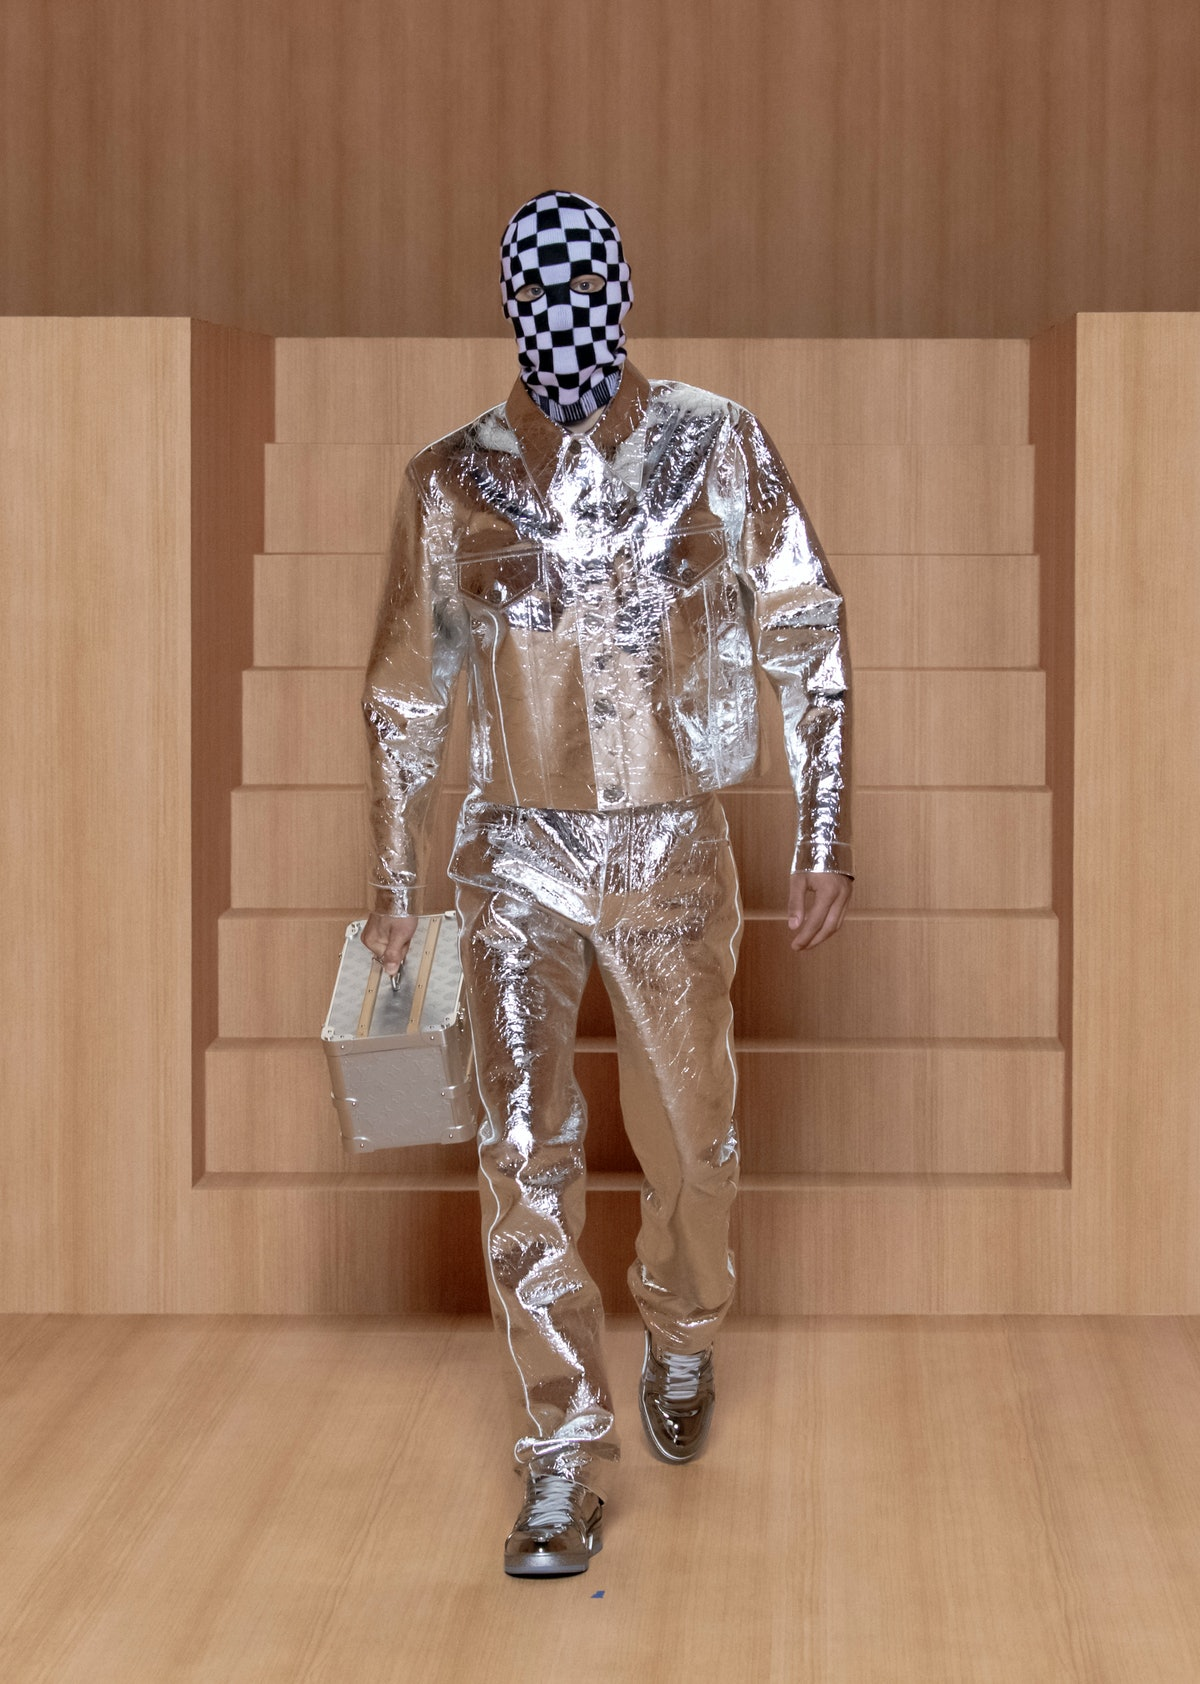 A model wearing a Louis Vuitton men's spring 2022 metallic suit and checkered face covering